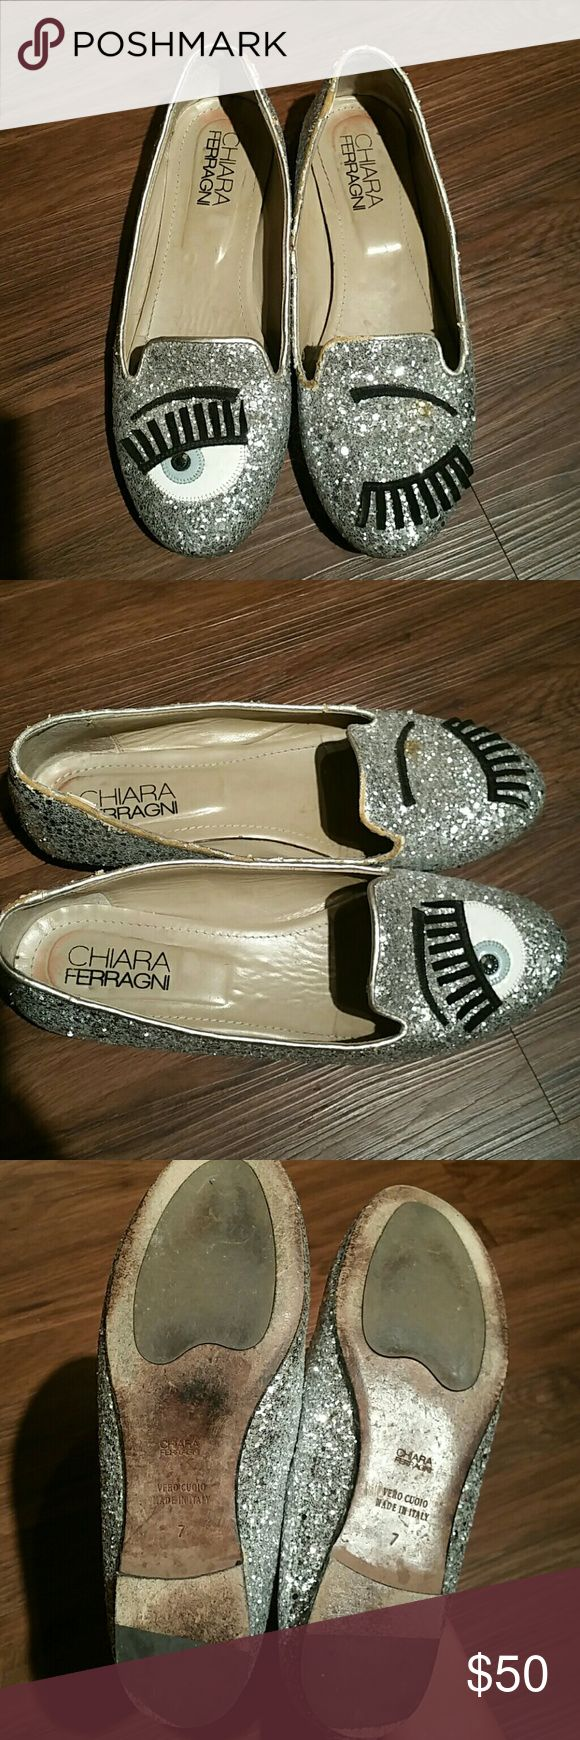 Chiara Ferragni Eye Bling Silver Sparkle Flats US7 Authentic Used Chiara Ferragni Flats US7, no trade, please see pictires for condition Chiara Ferragni Shoes Flats & Loafers